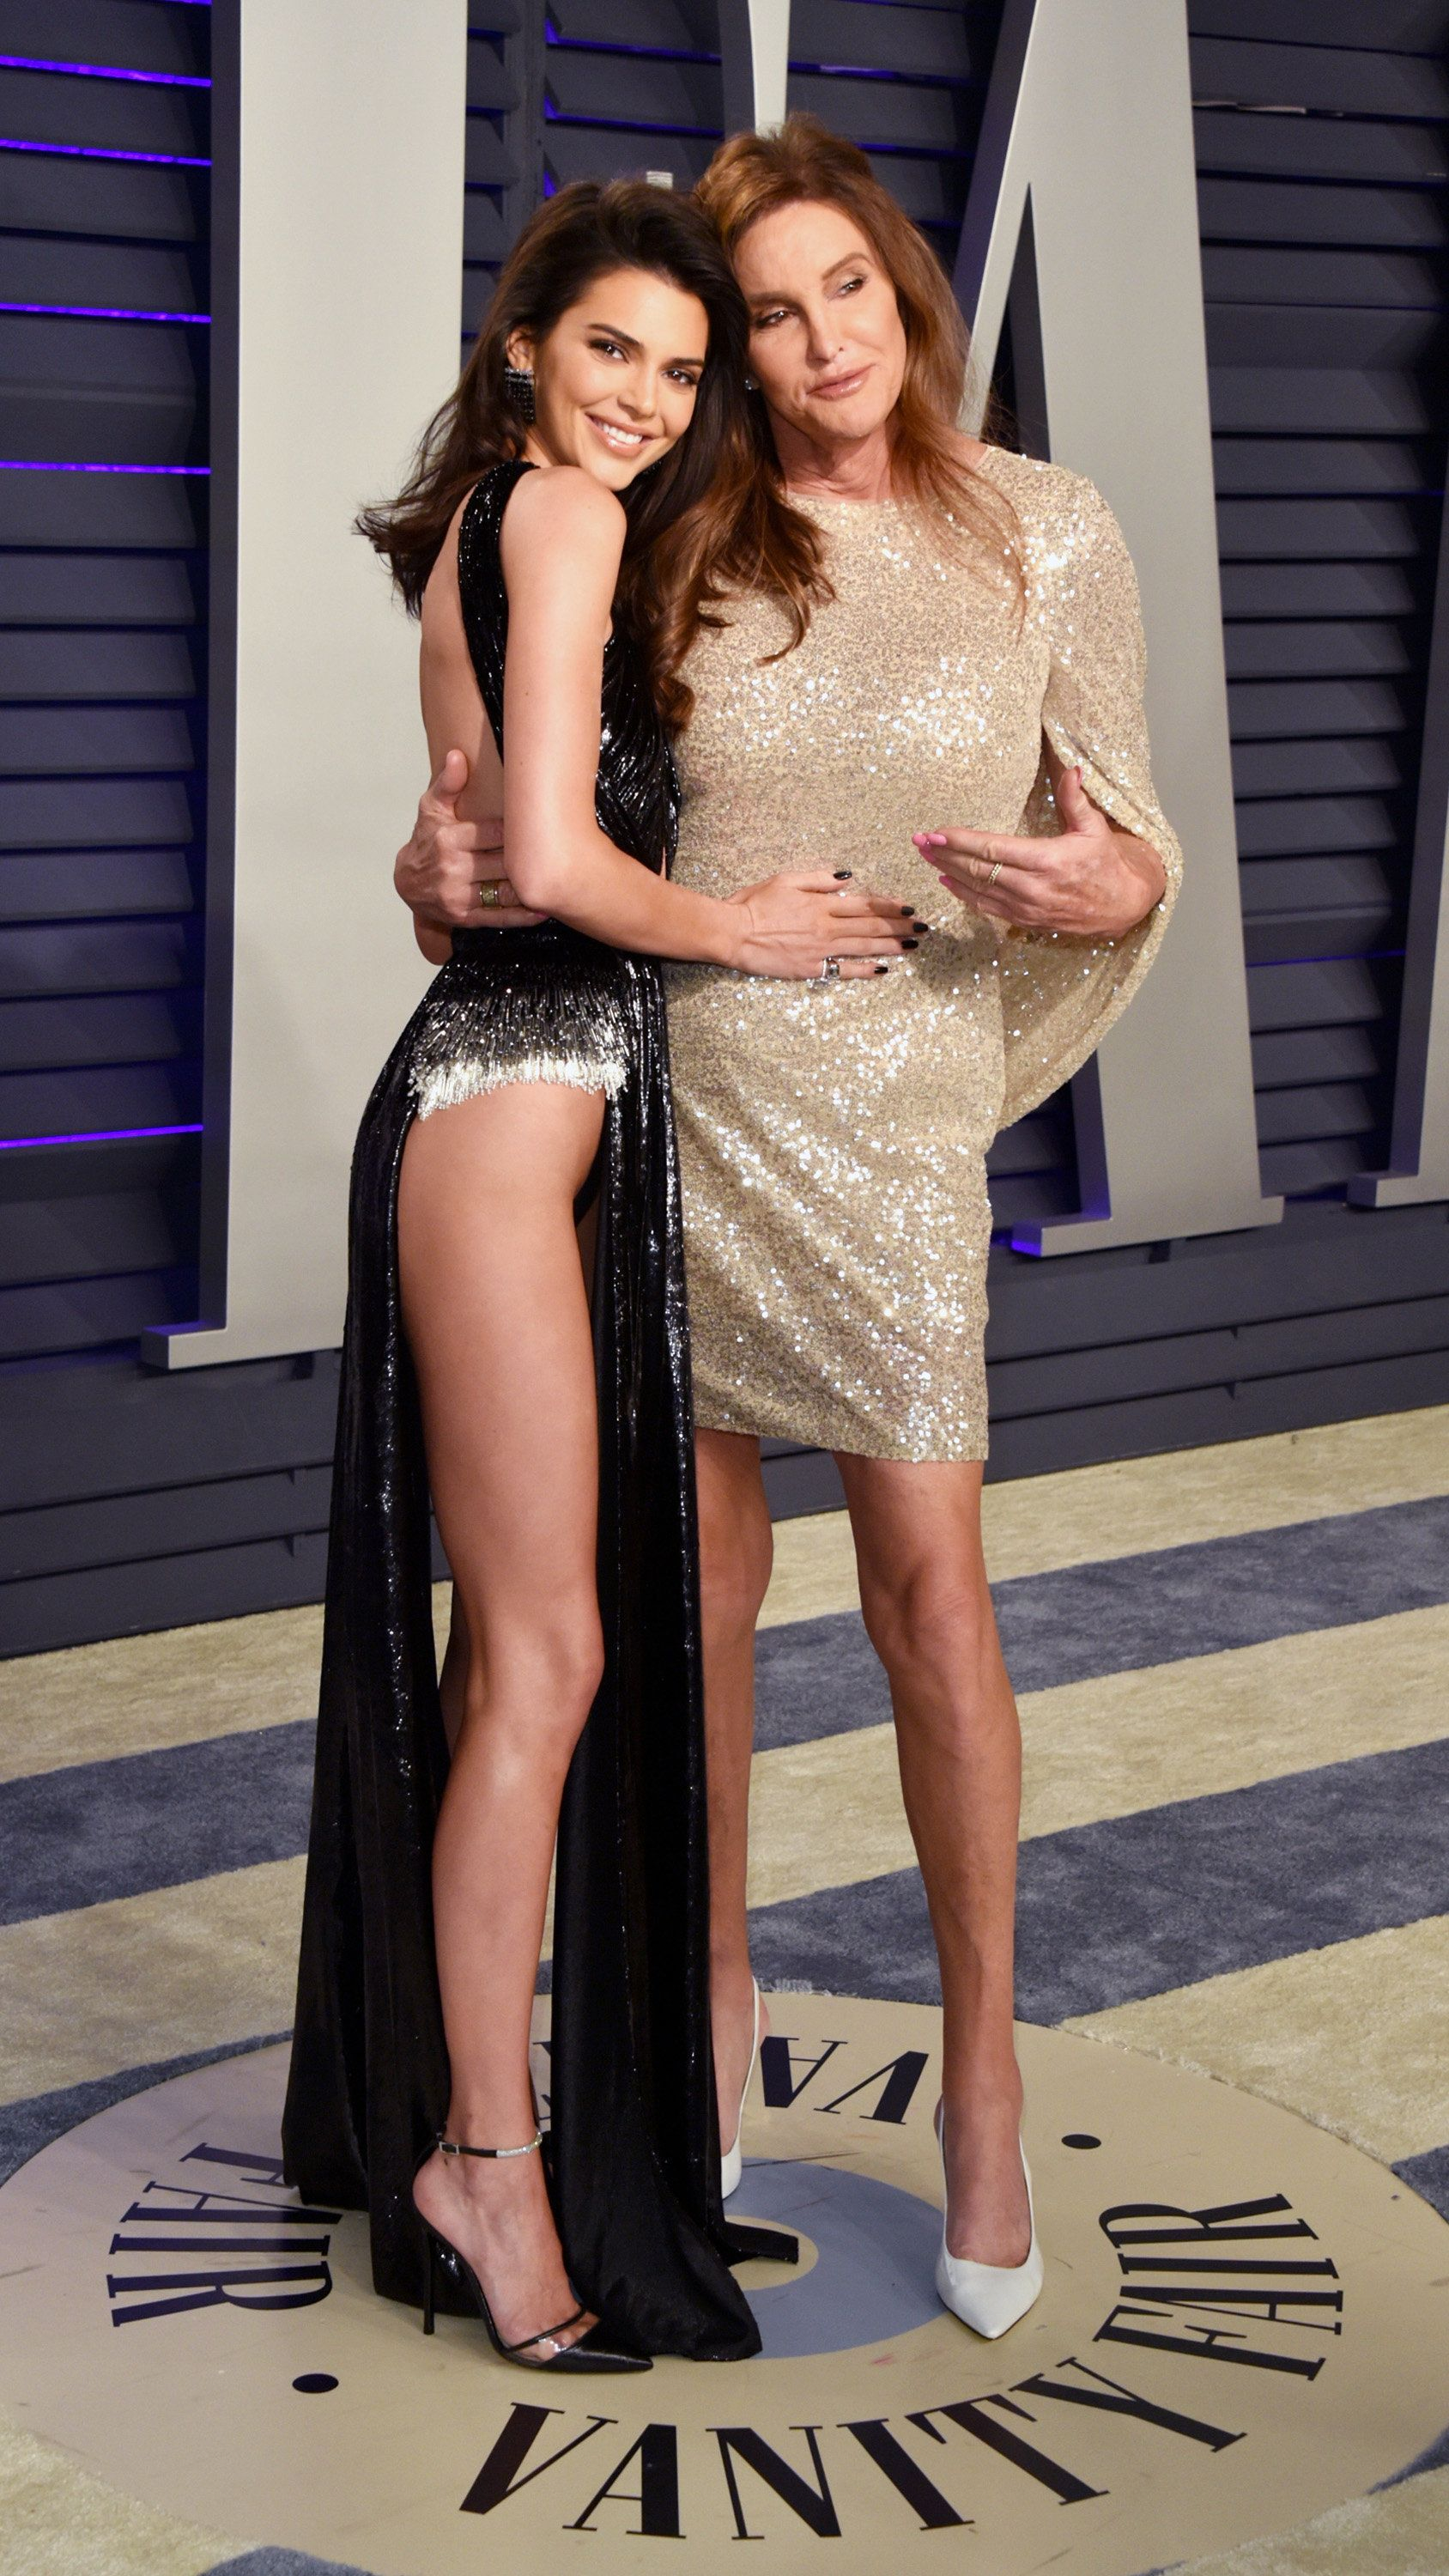 Kendall and Caitlyn Jenner on theVanity Fair party's red carpet.